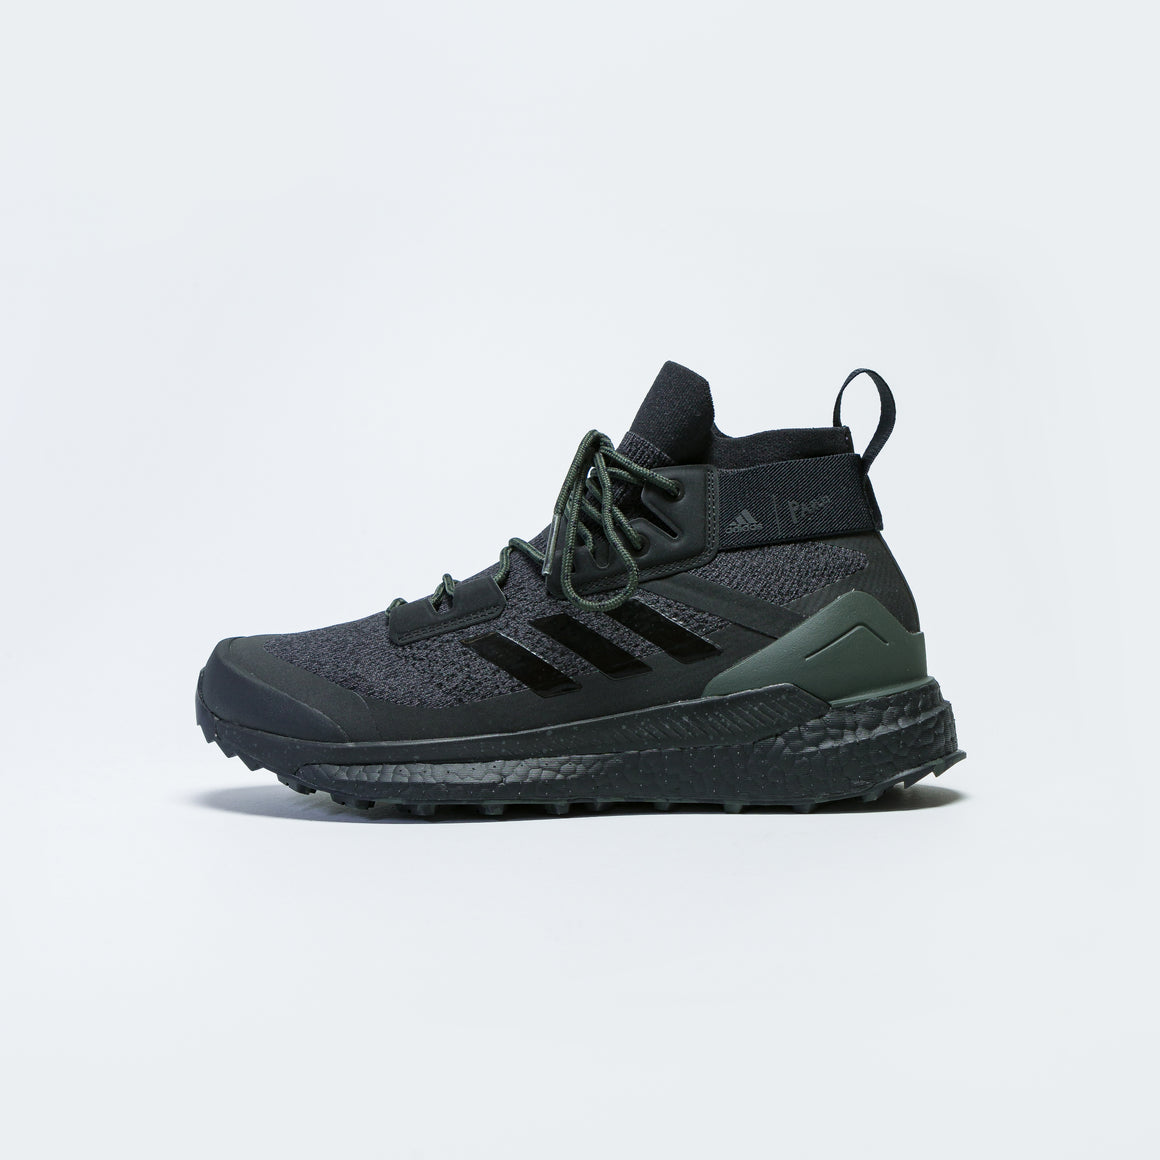 adidas - Terrex Free Hiker Parley - Core Black - Up There